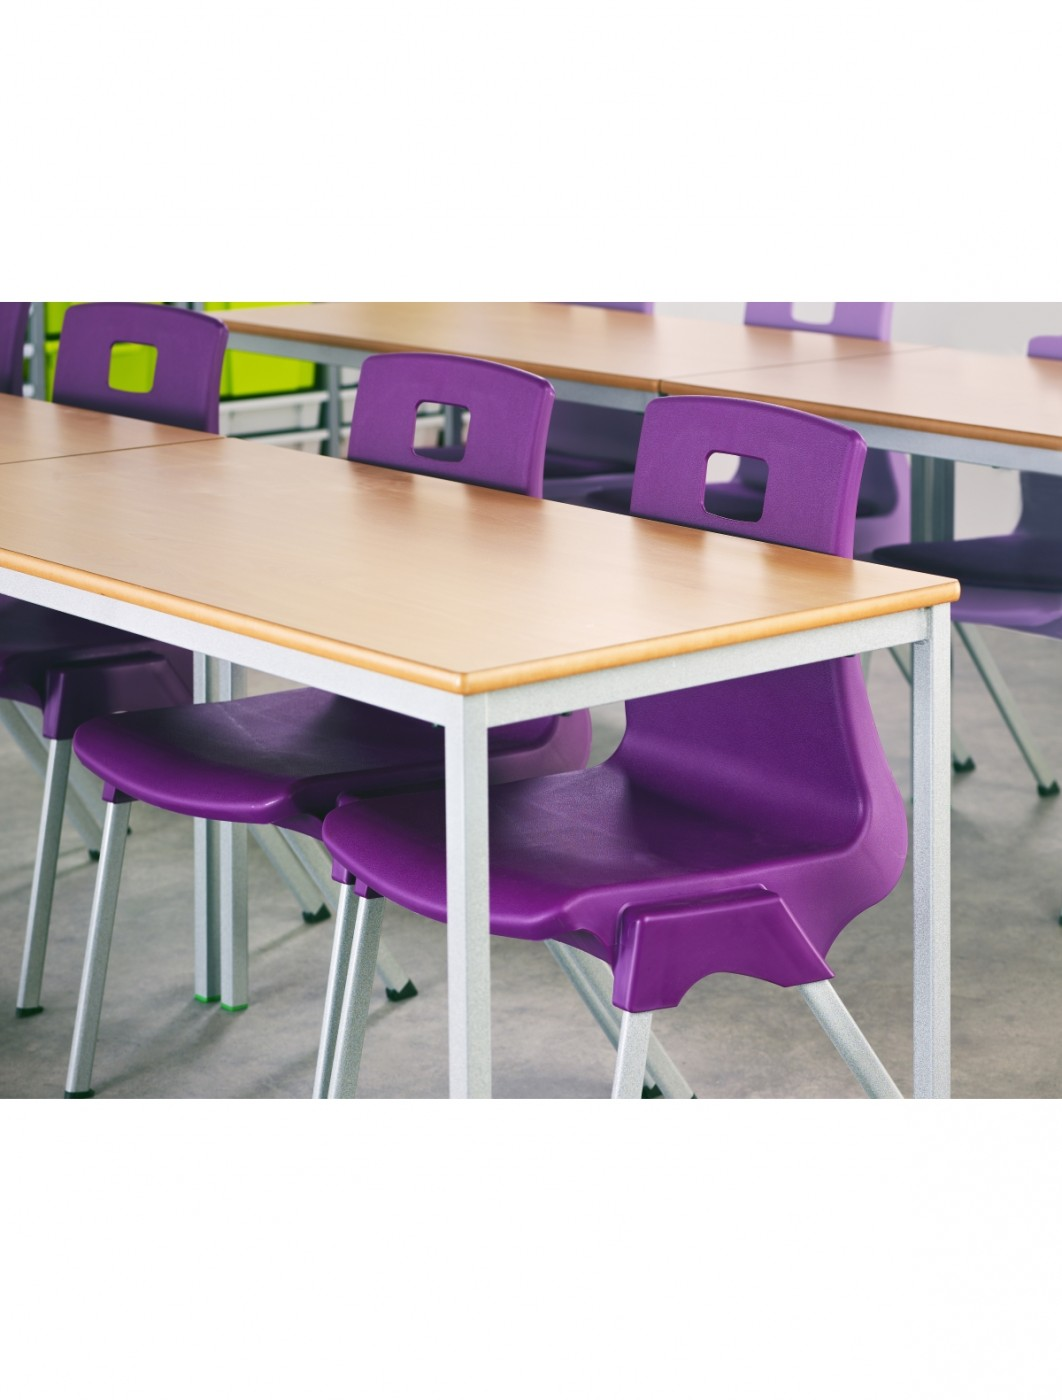 Classroom Tables - 1200x750mm Rectangular Stacking Tables SQSS-127-MD - Fully Welded